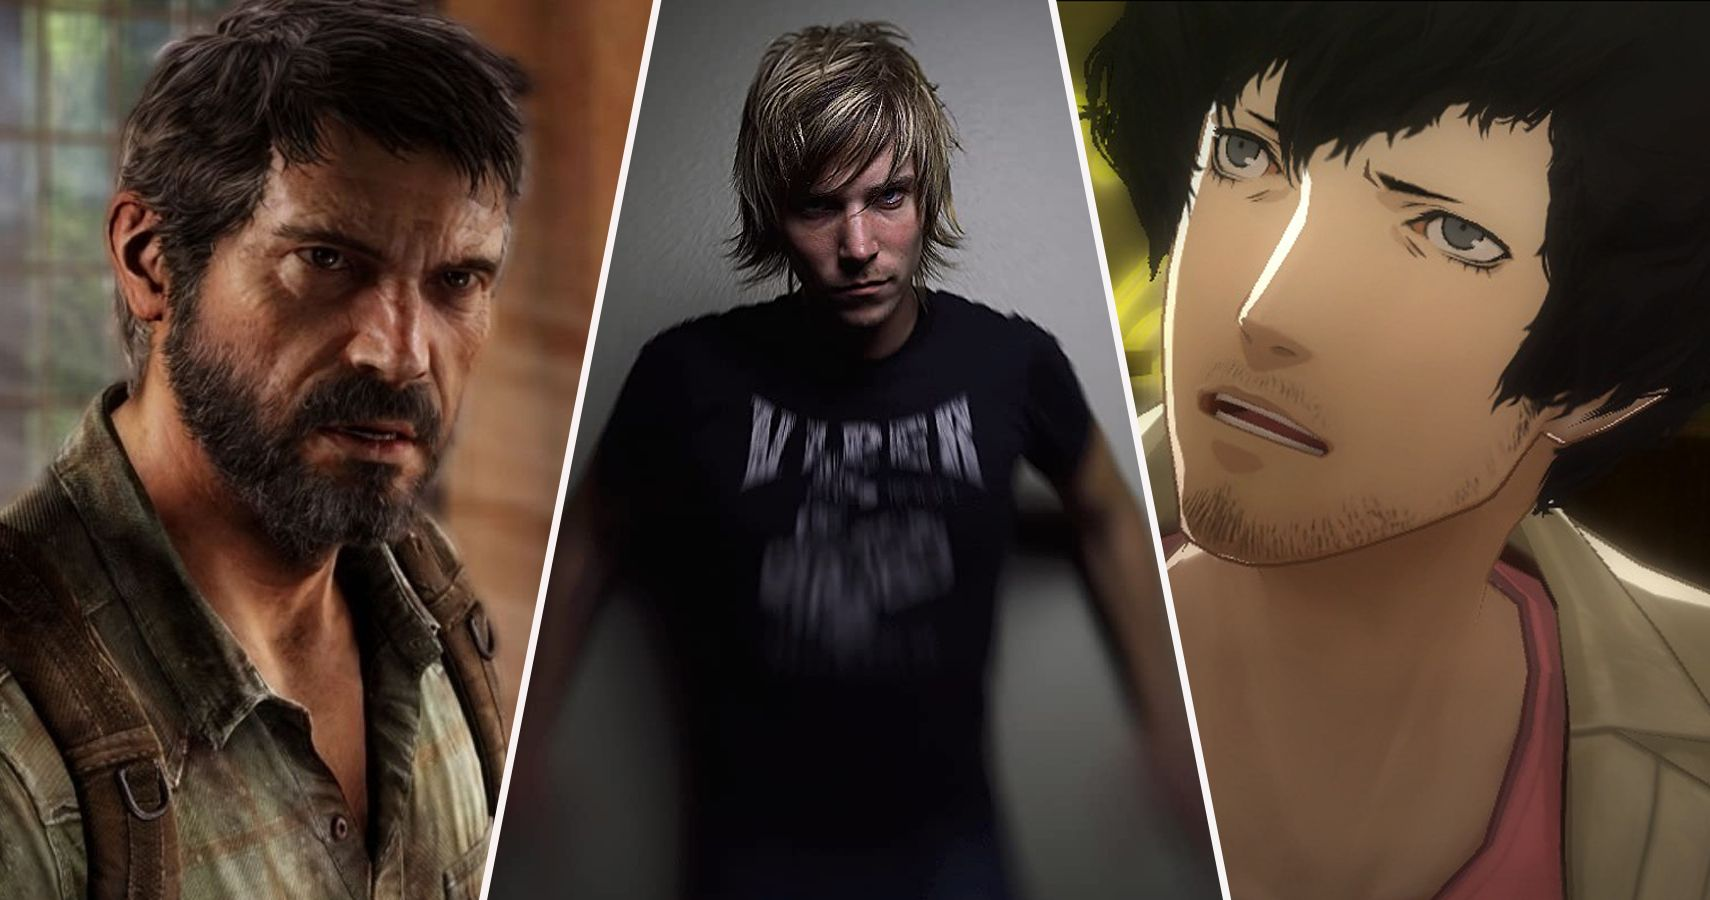 Troy Baker S 5 Most Iconic Video Game Voice Acting Roles 5 You Didn T Know About